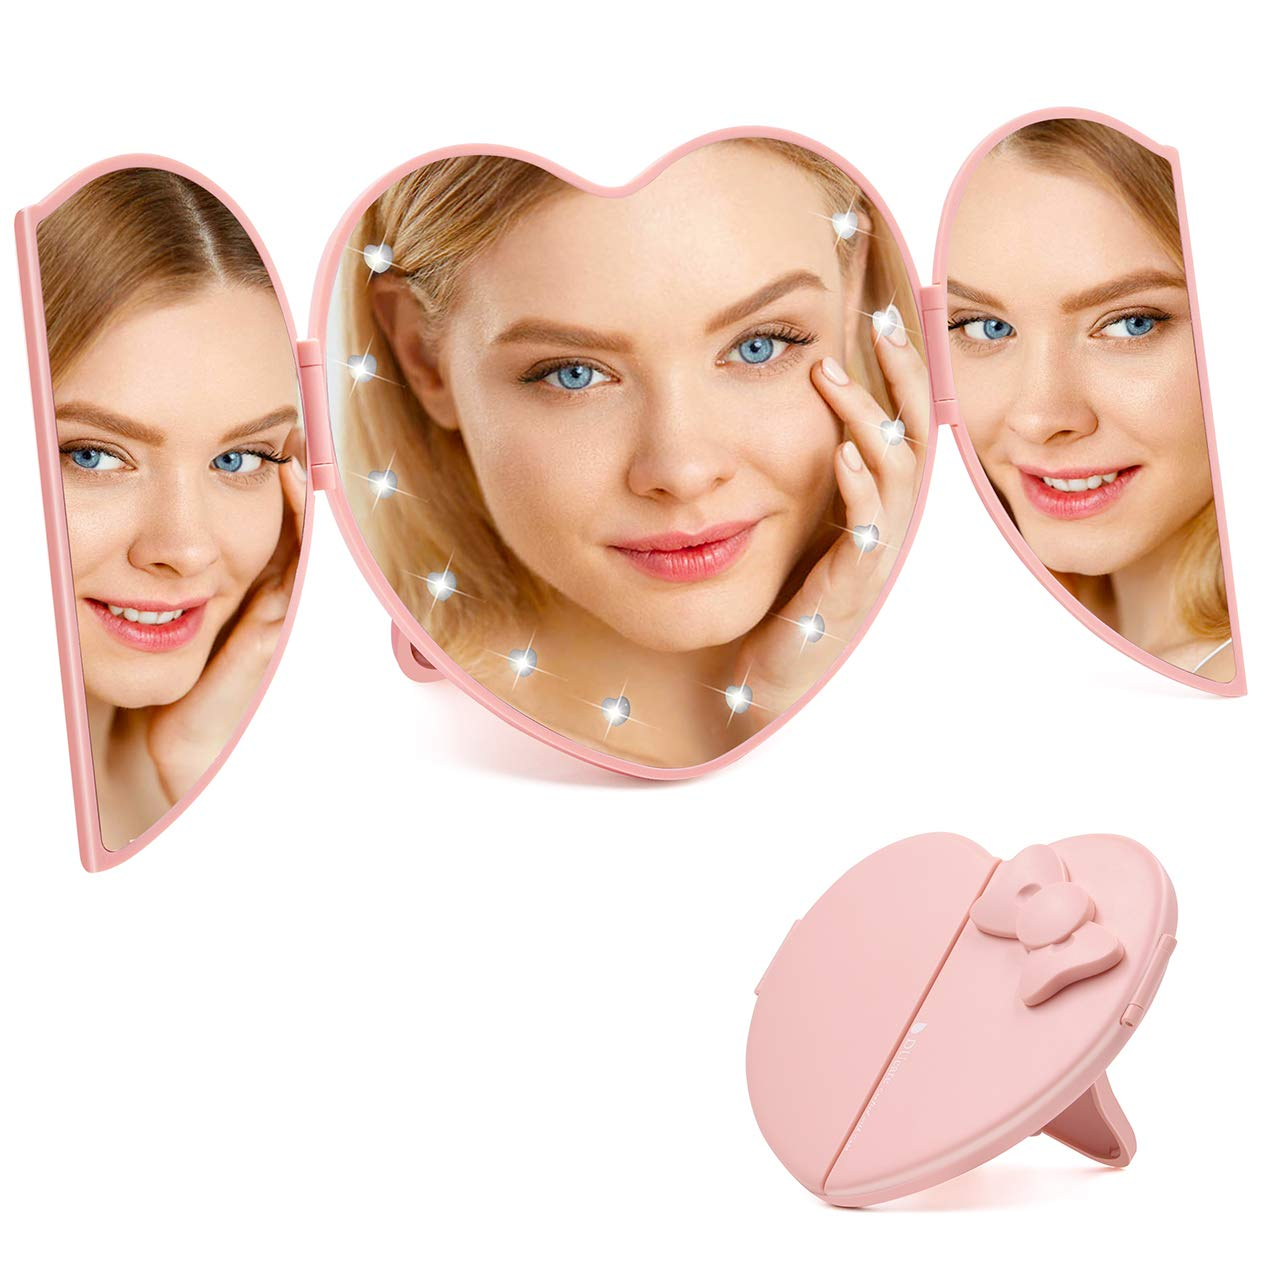 Ursulan Foldable Mirror LED Light Travel Makeup Mirror Tri Fold Heart Shape Portable Vanity Mirror for Personal Use Camping Travelling Cosmetic Mirrors Battery Operated Pink